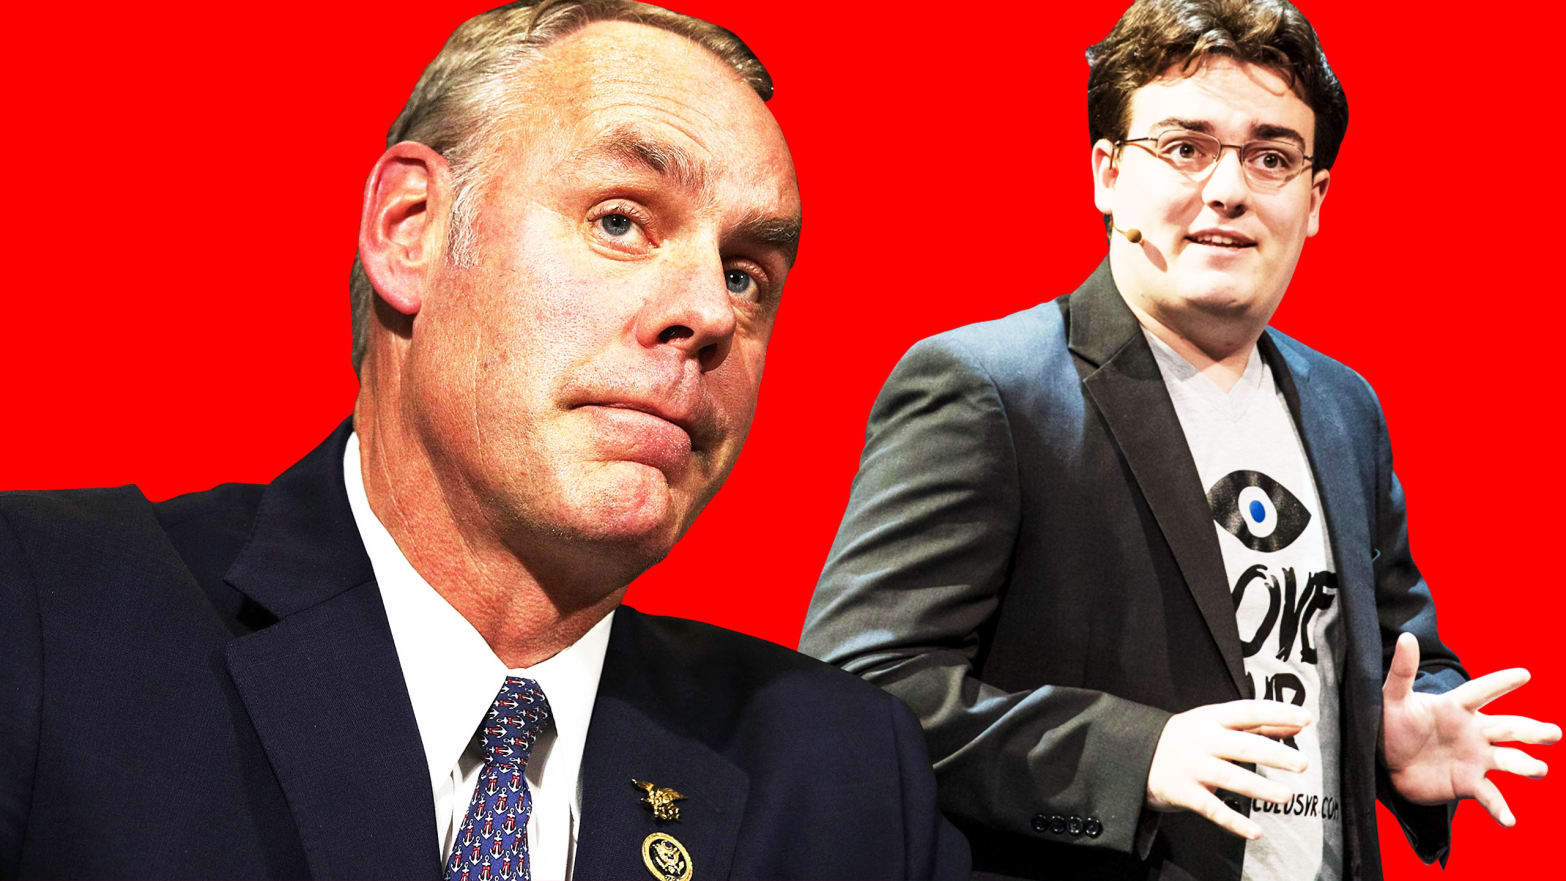 The Inside Story Of How Palmer Luckey Scored a Meeting With the Interior Secretary